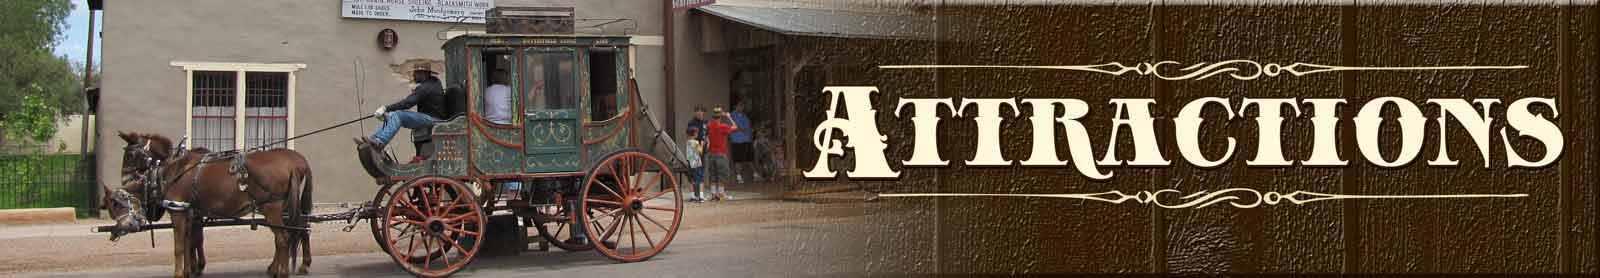 Tombstone Arizona Attractions